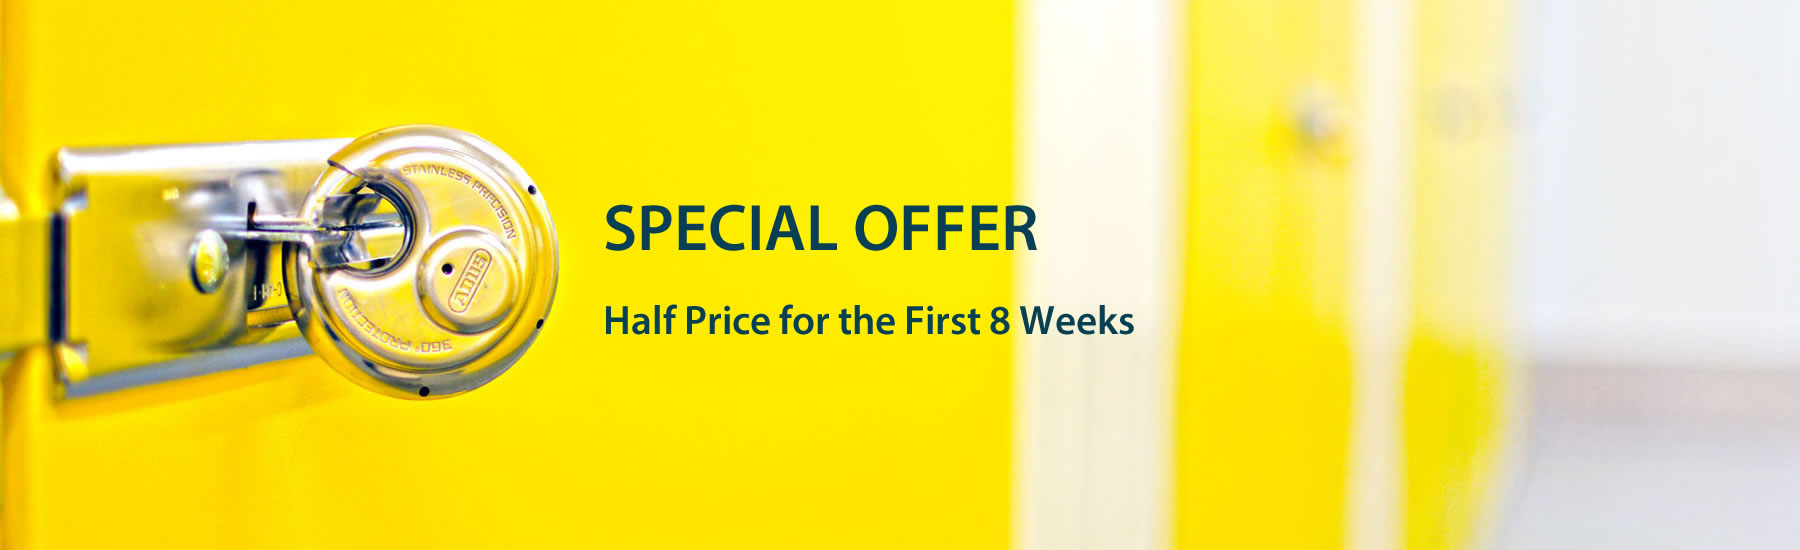 Special Offer - Half price for first 8 weeks